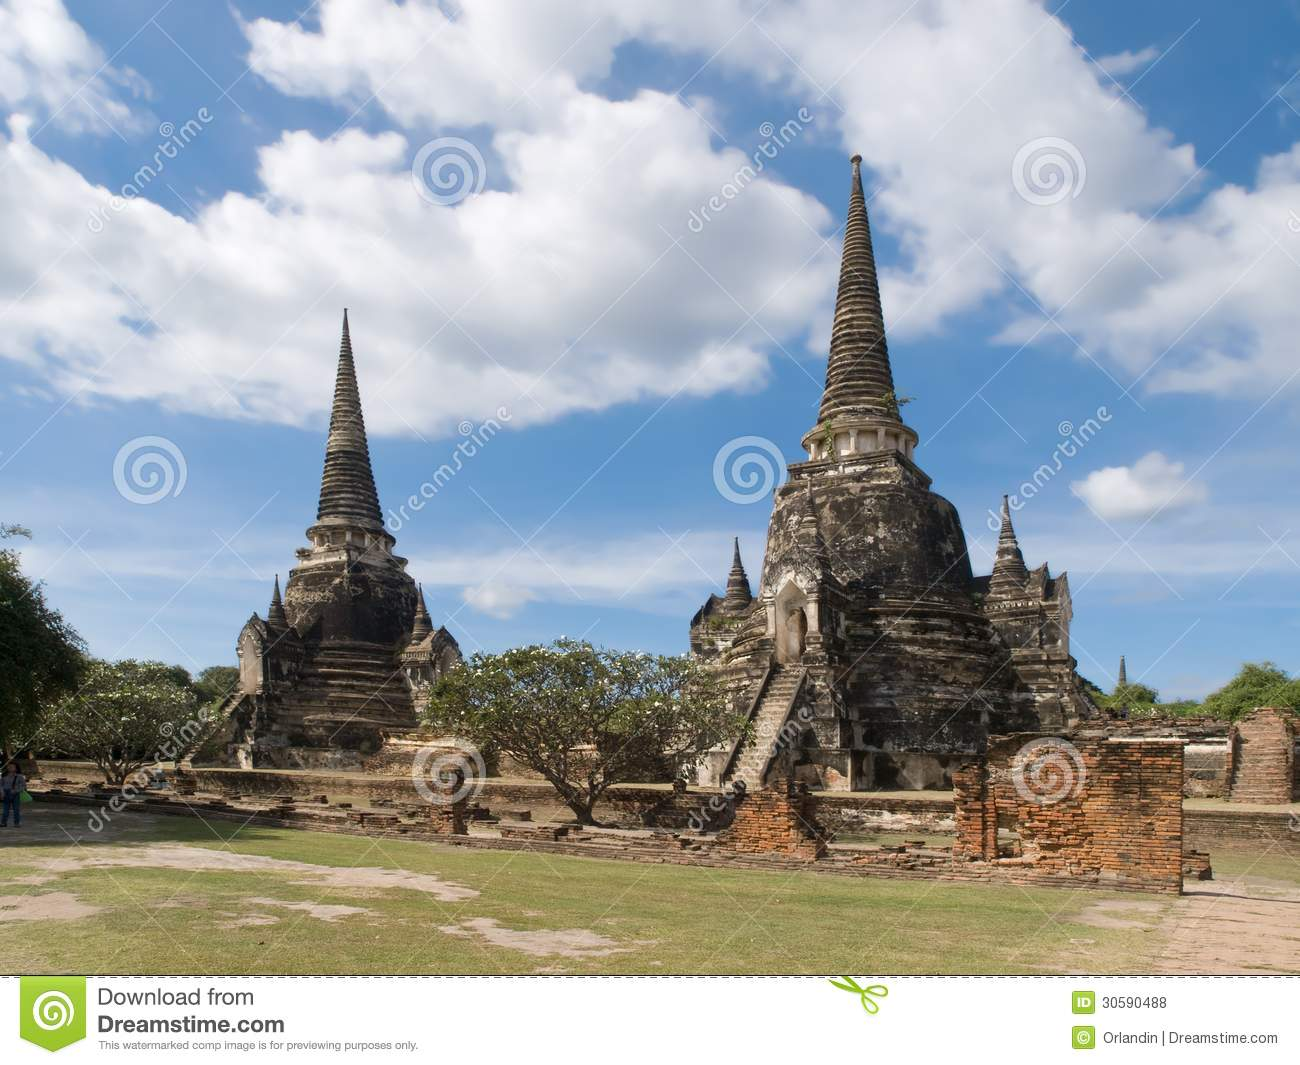 Wat Phra Sri Sanphet Royalty Free Stock Photos - Image: 30590488